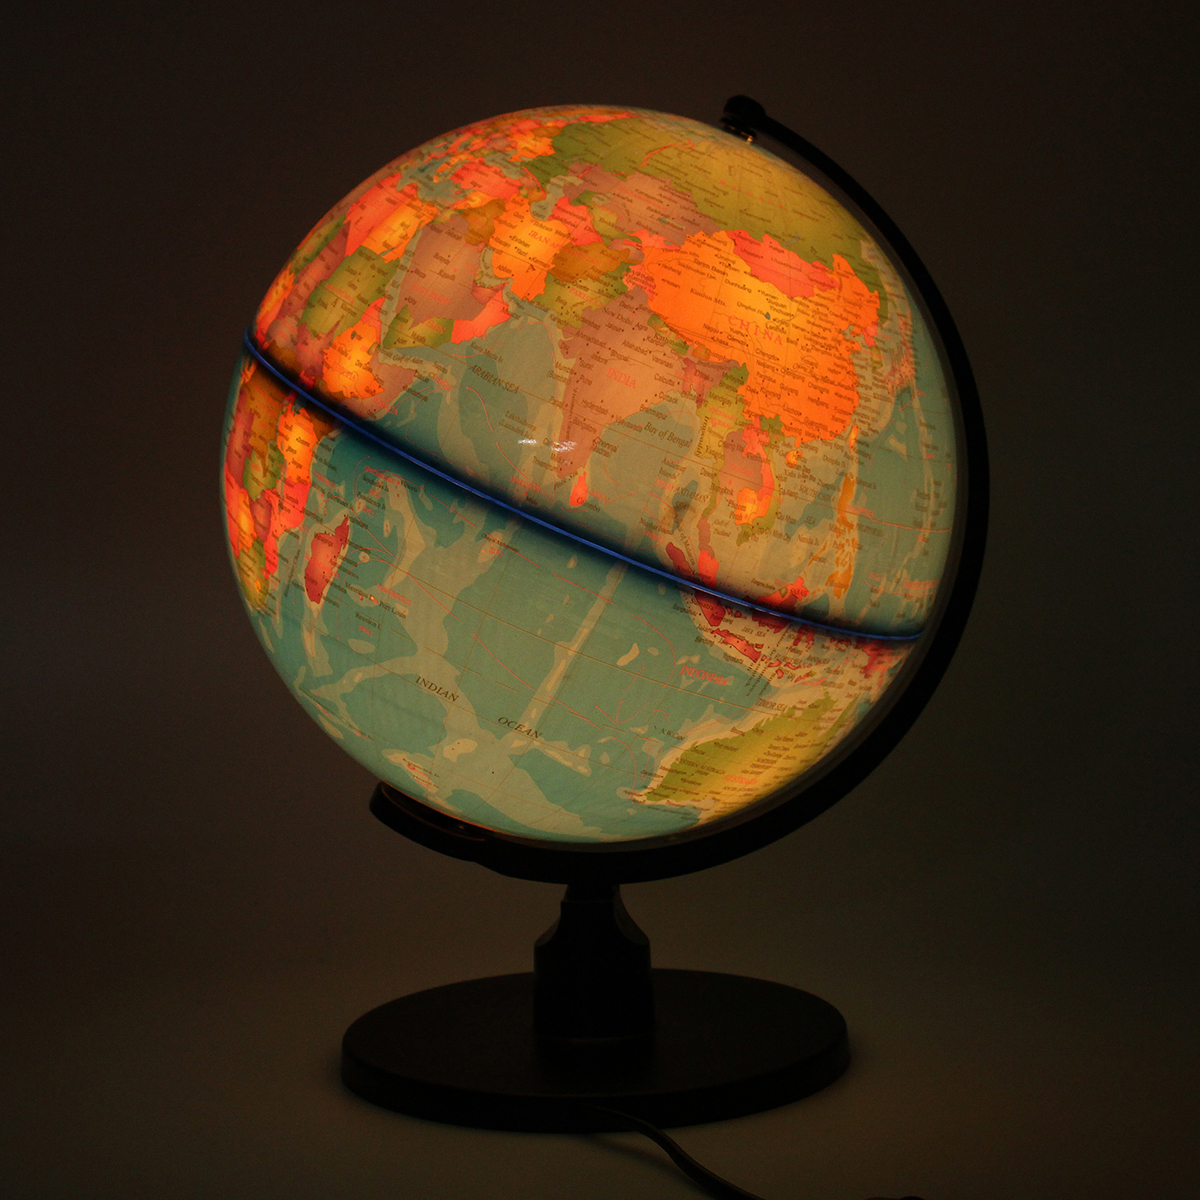 Terrestrial Earth Globe World Map LED Light Geography Education Toy With Stand Home Decoration Office Ornament Kids Gift